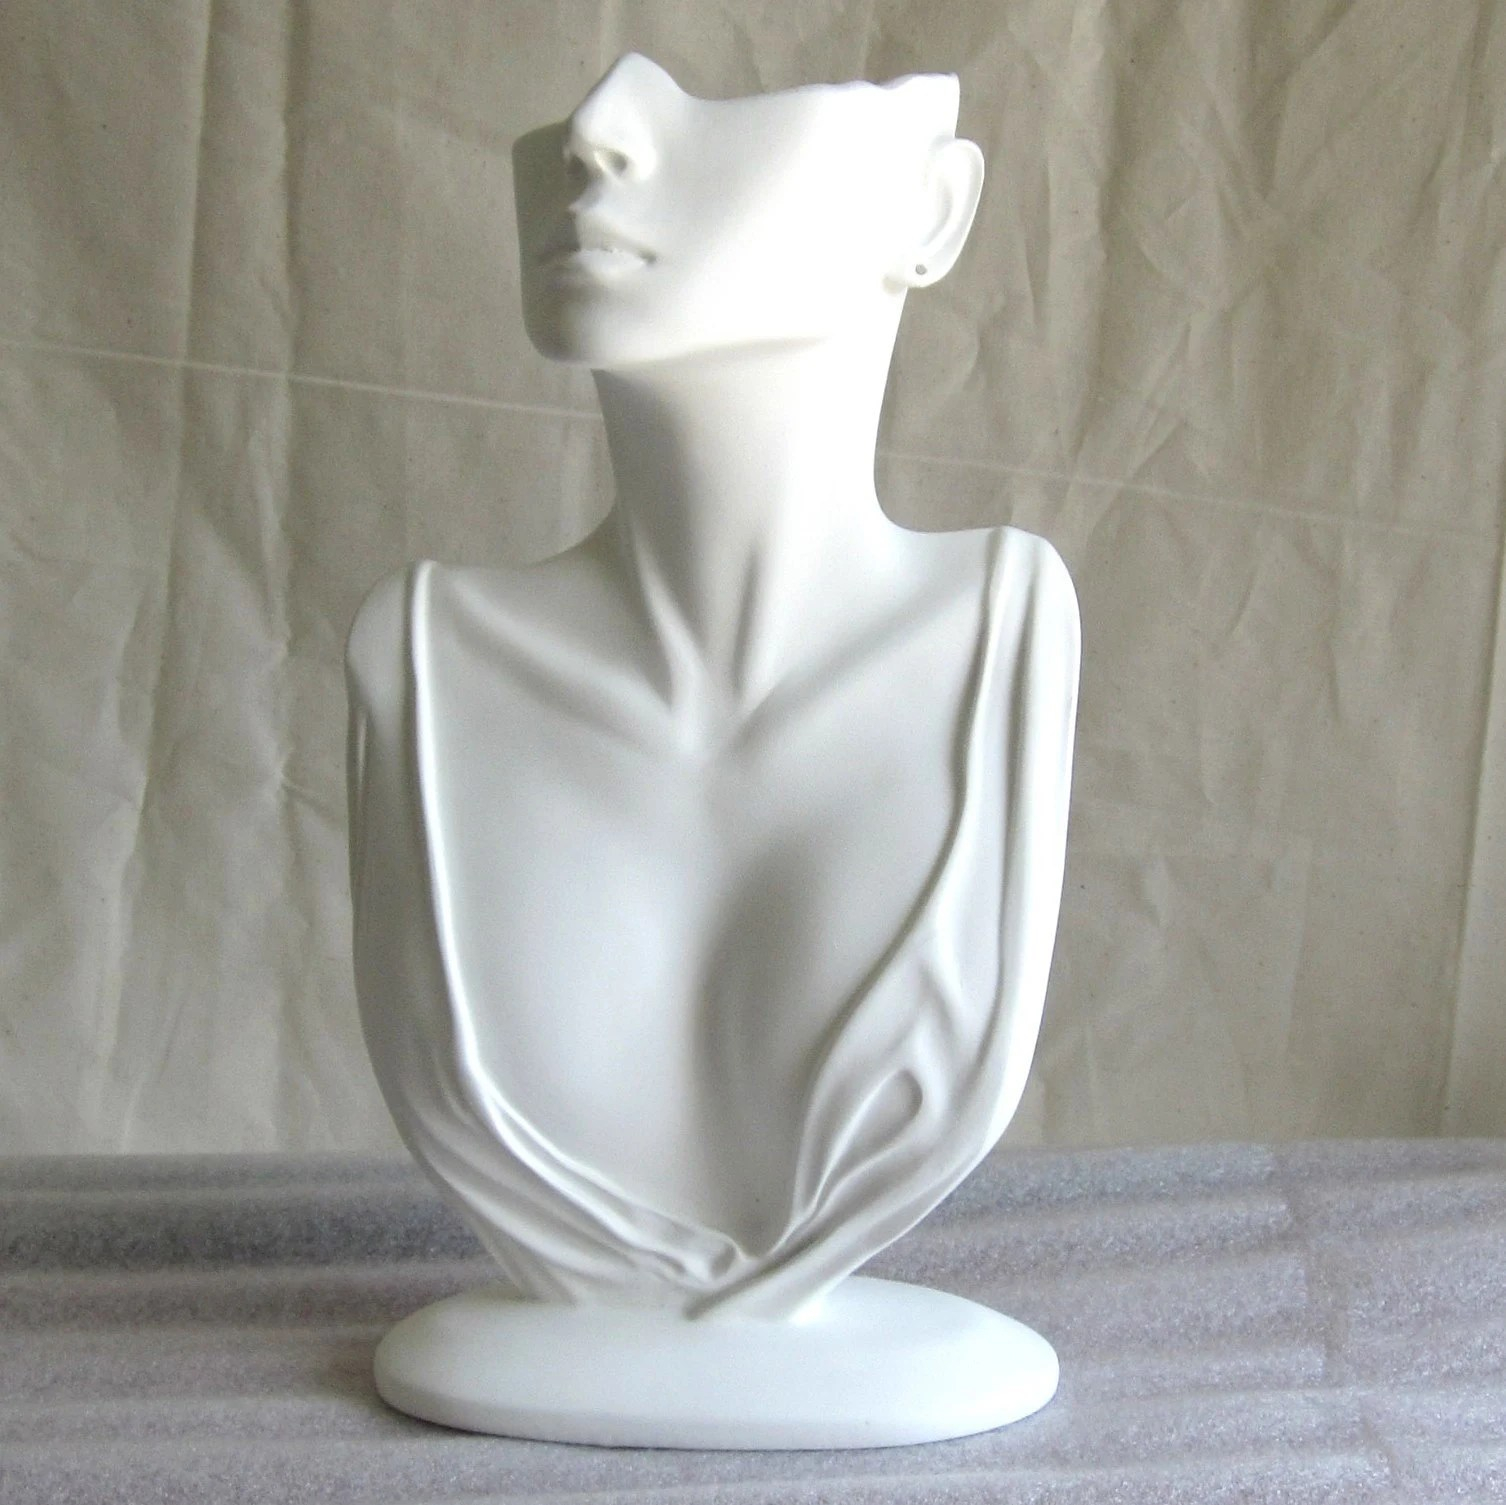 Mannequin Bust Jewelry Display By Beforemeetsafter On Etsy